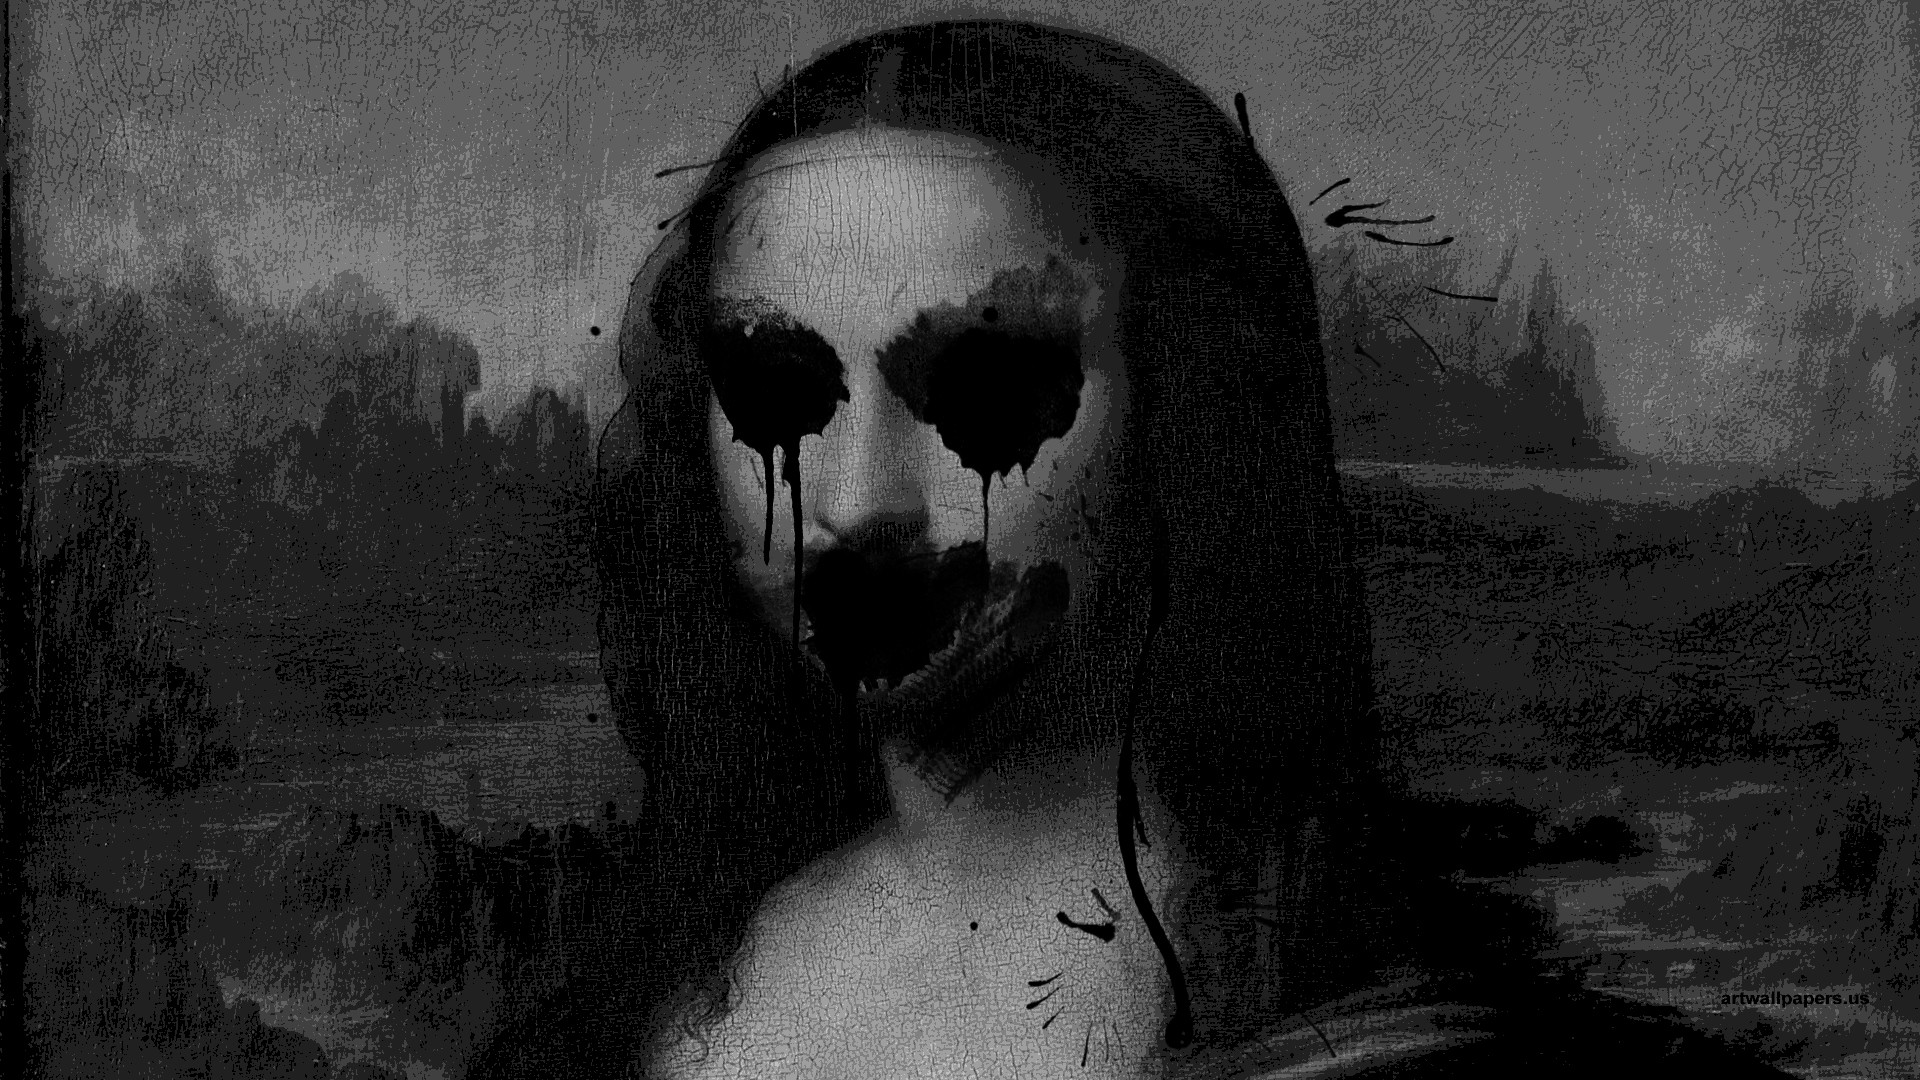 1920x1080 Lisa Creepy Desktop Wallpapers Mona Lisa Creepy Desktop Backgrounds